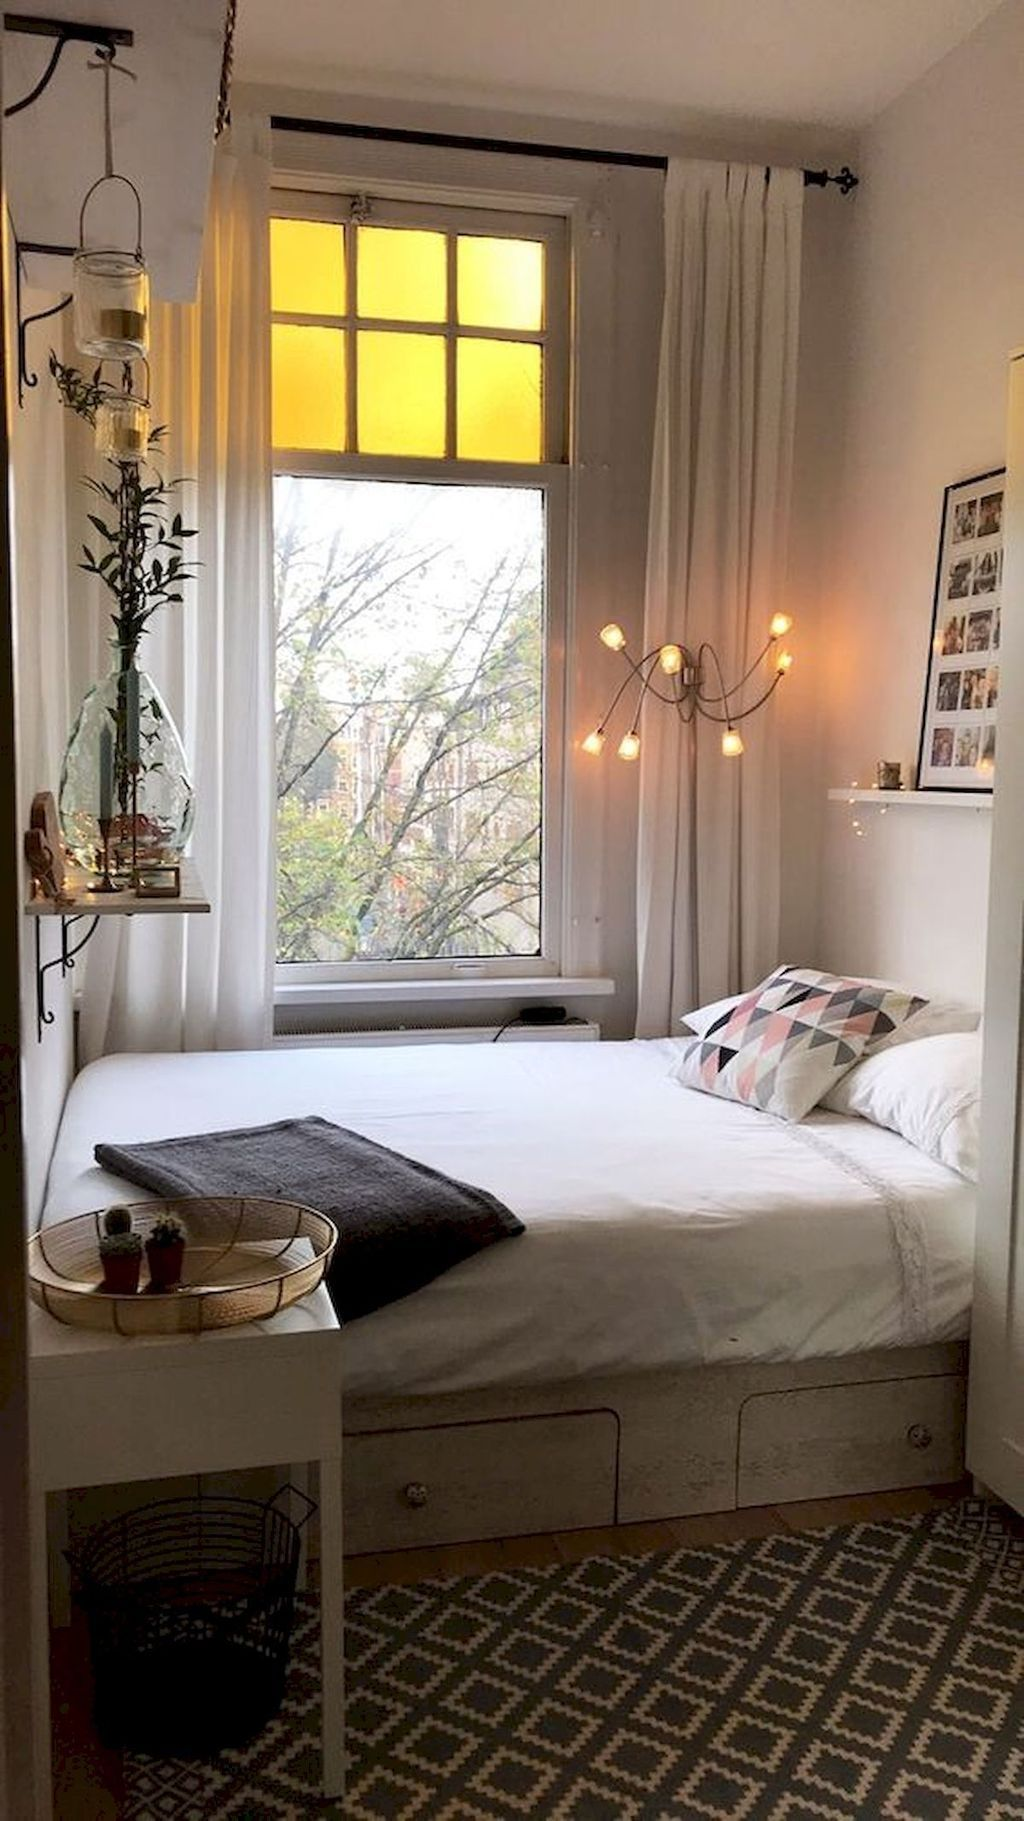 30 Charming Bedroom Ideas For Your Tiny Apartment That Looks Cool